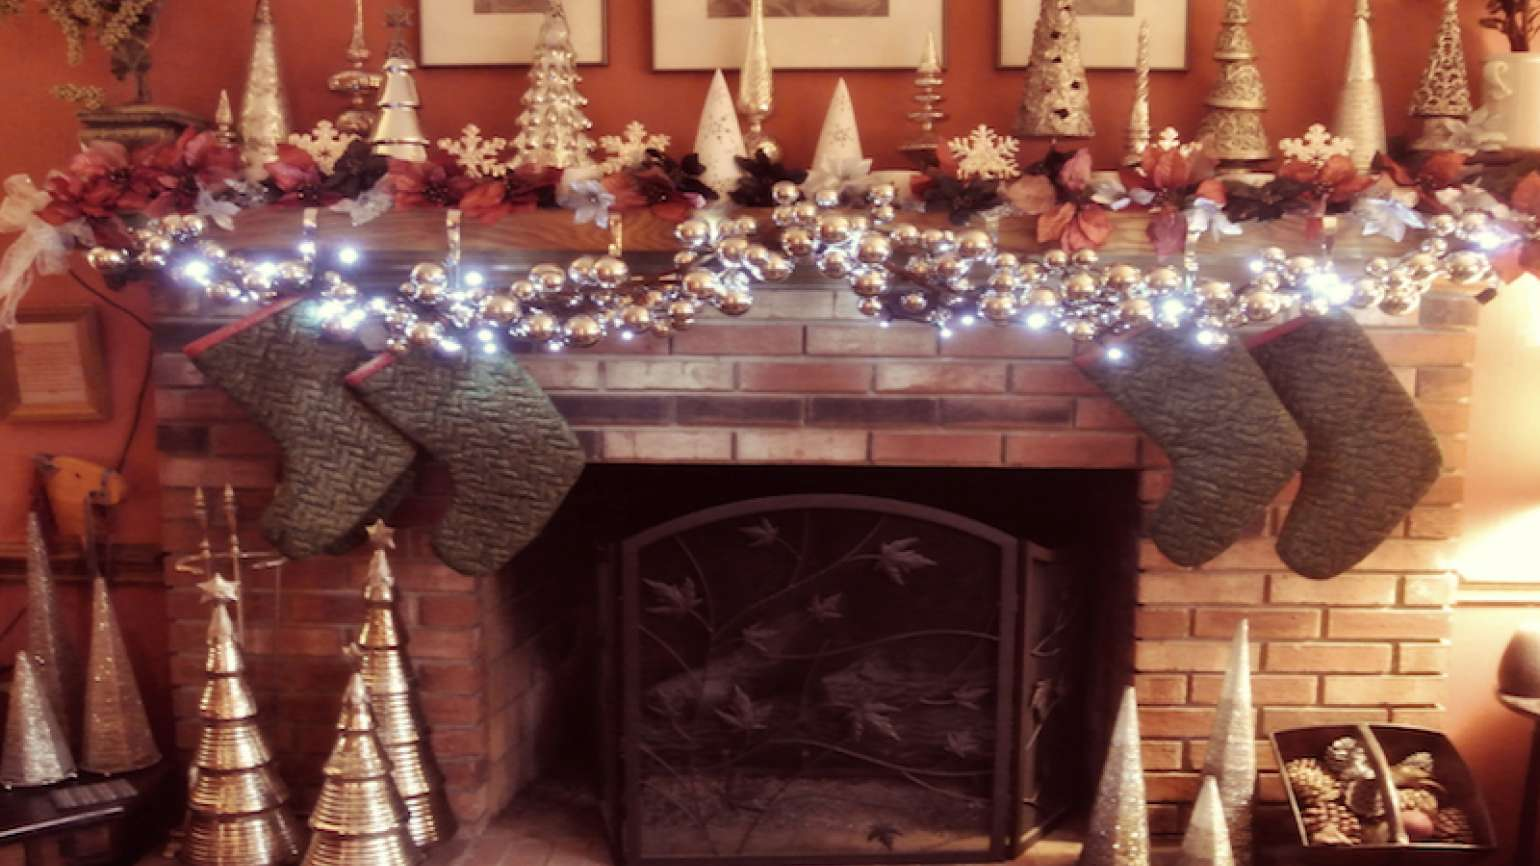 Edie Melson's mantle at Christmas.